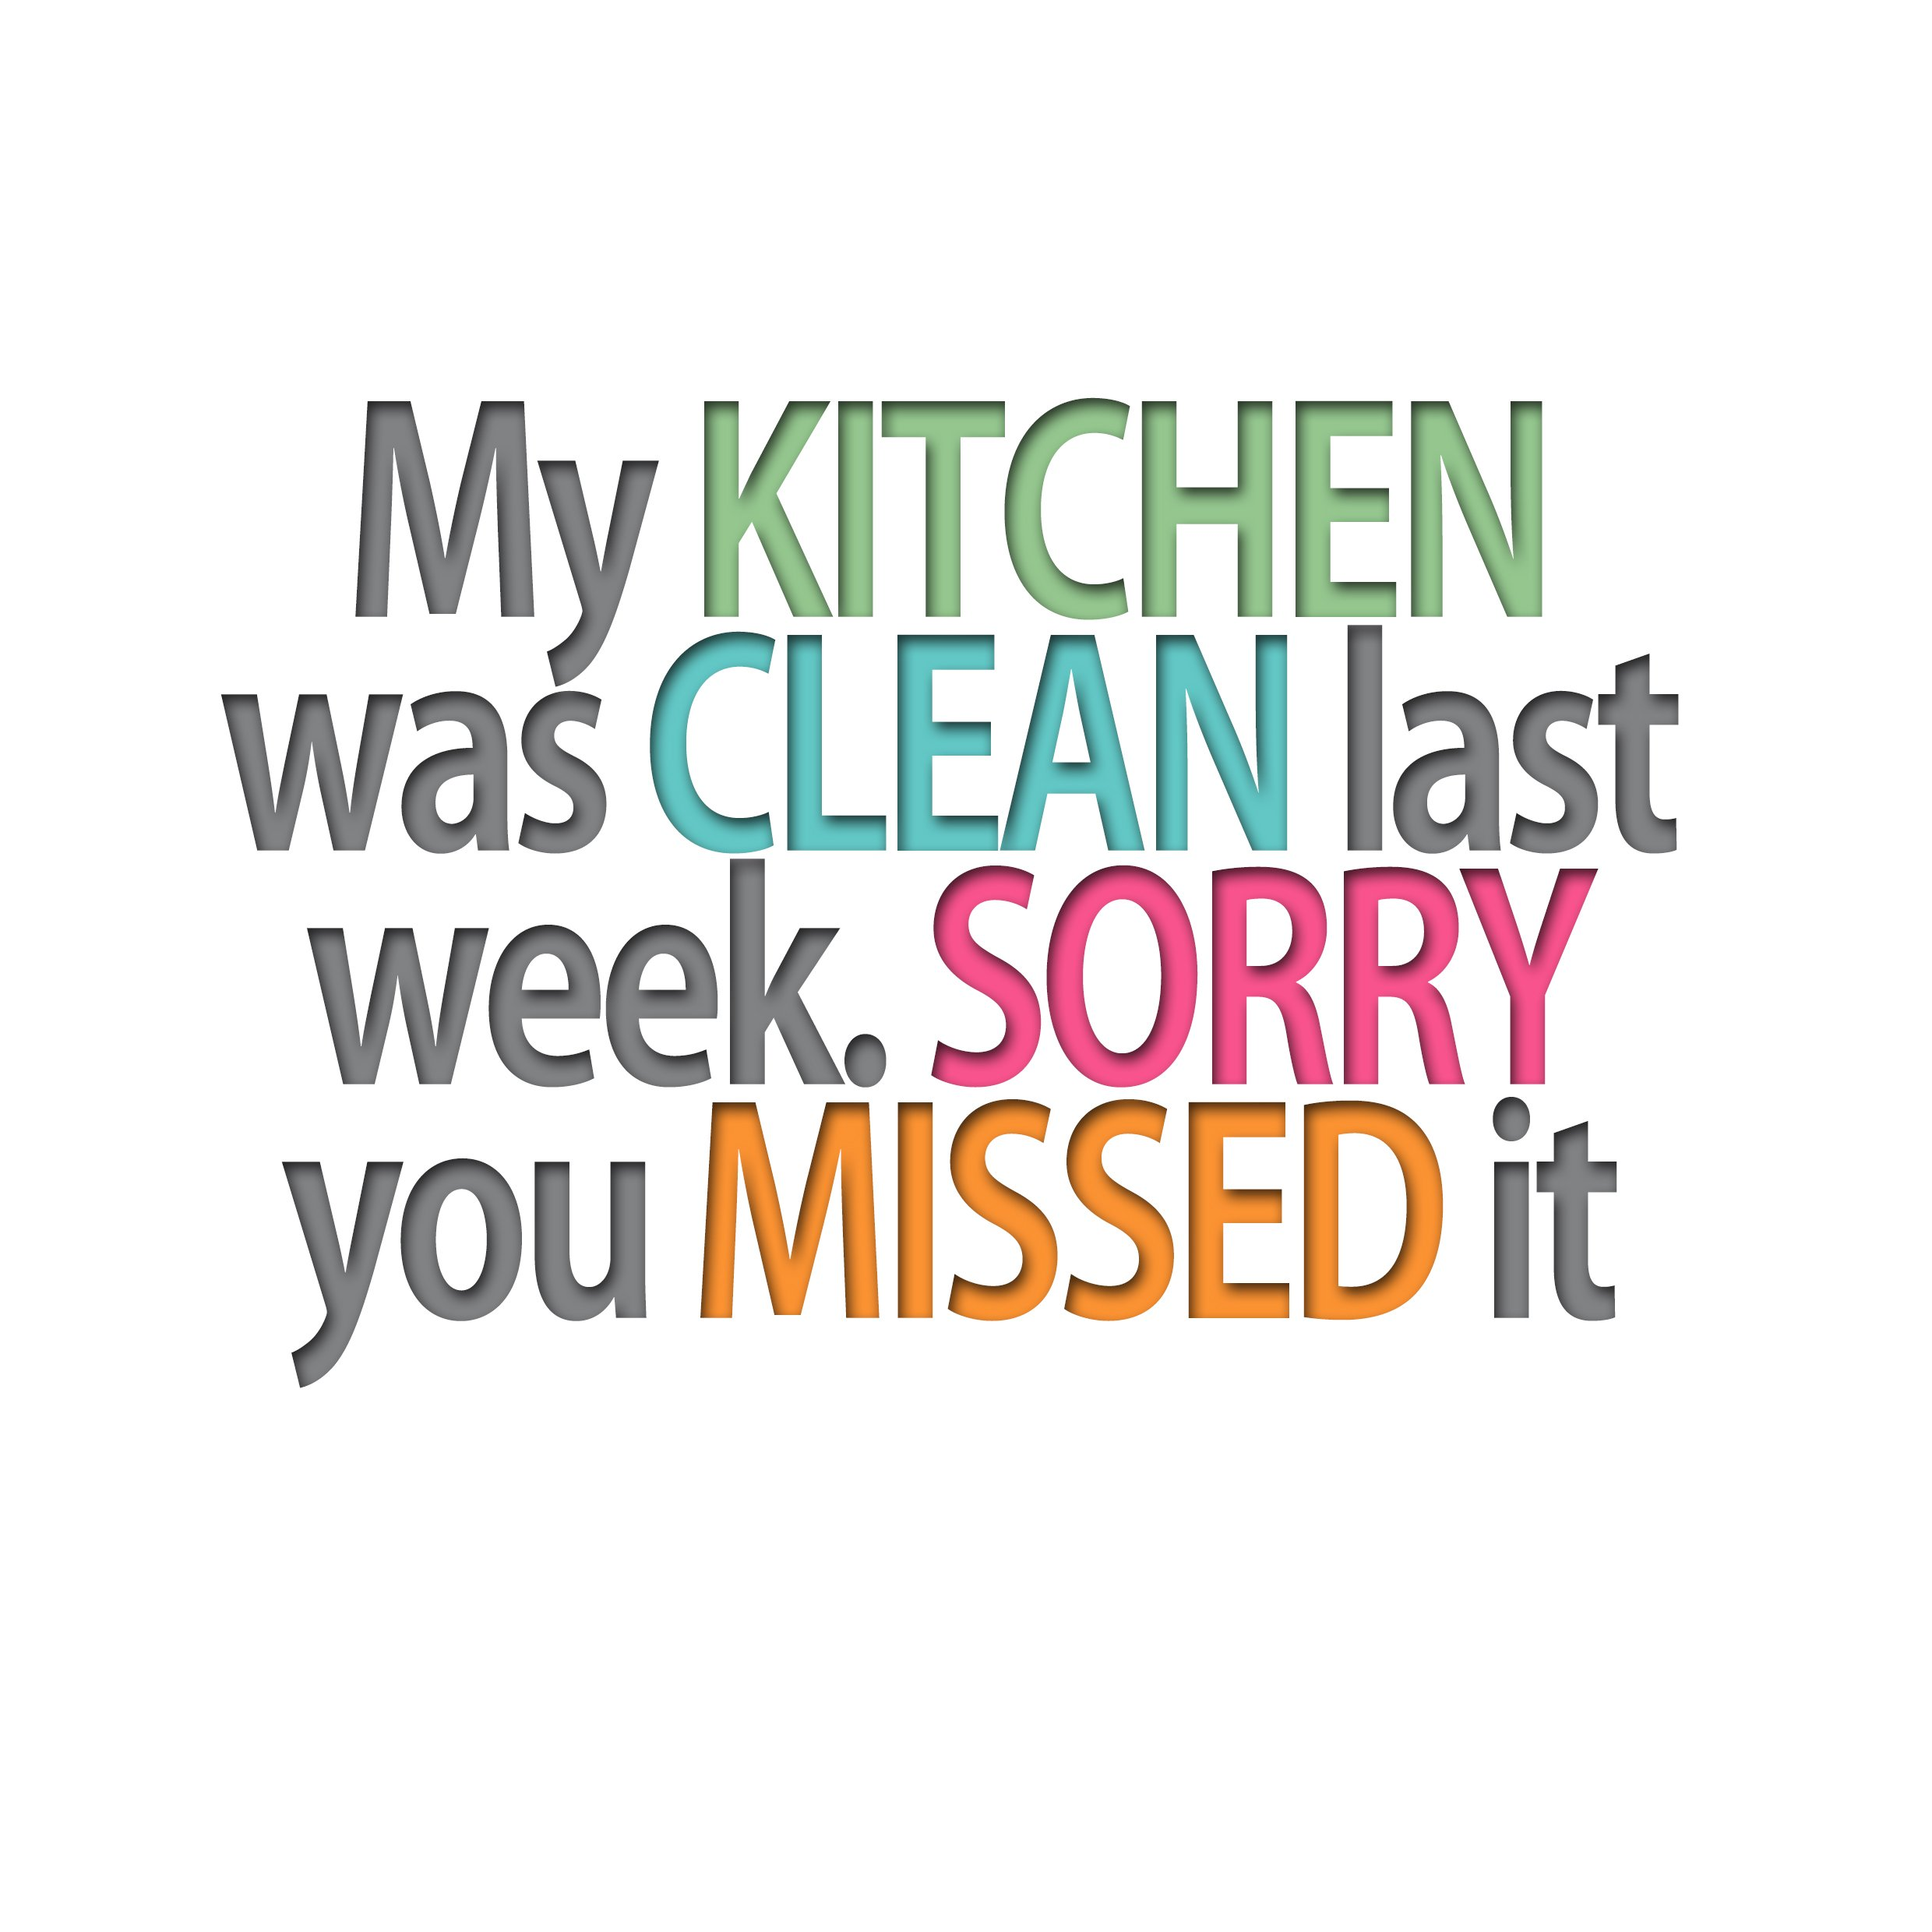 8 Bedroom House Cleaning Quotes Quotesgram